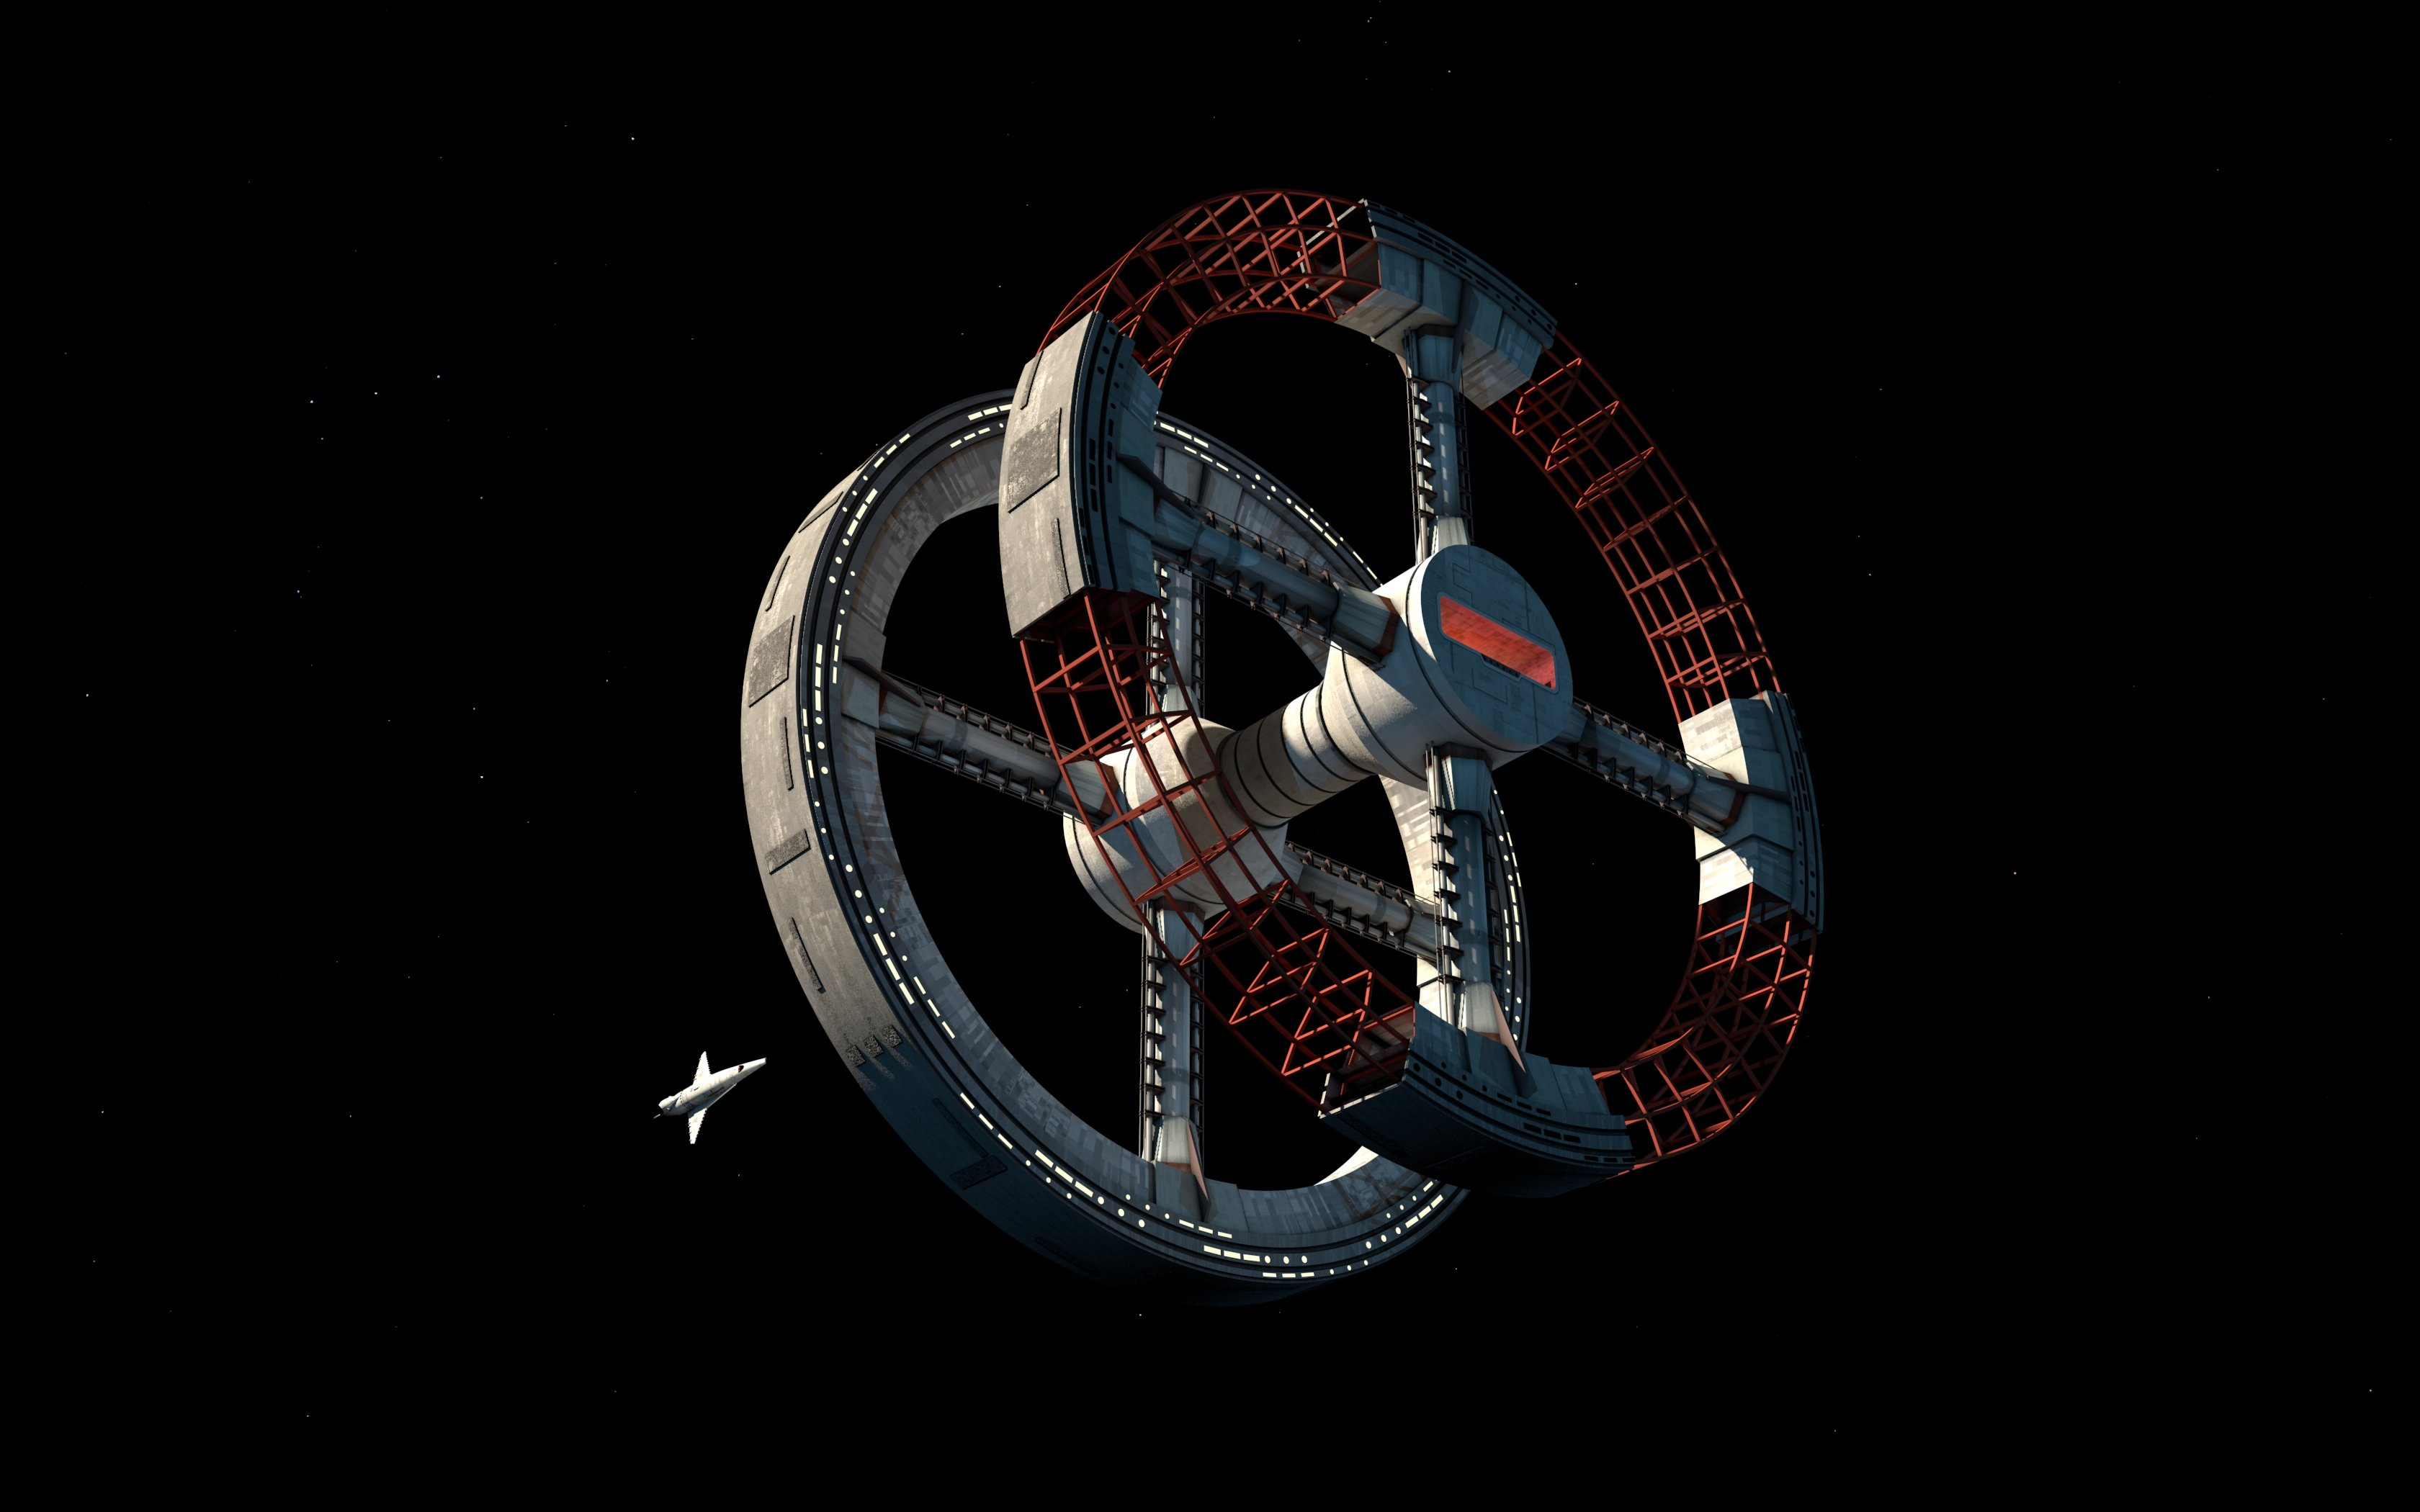 74 2001 a space odyssey wallpaper on wallpapersafari - Space odyssey wallpaper ...